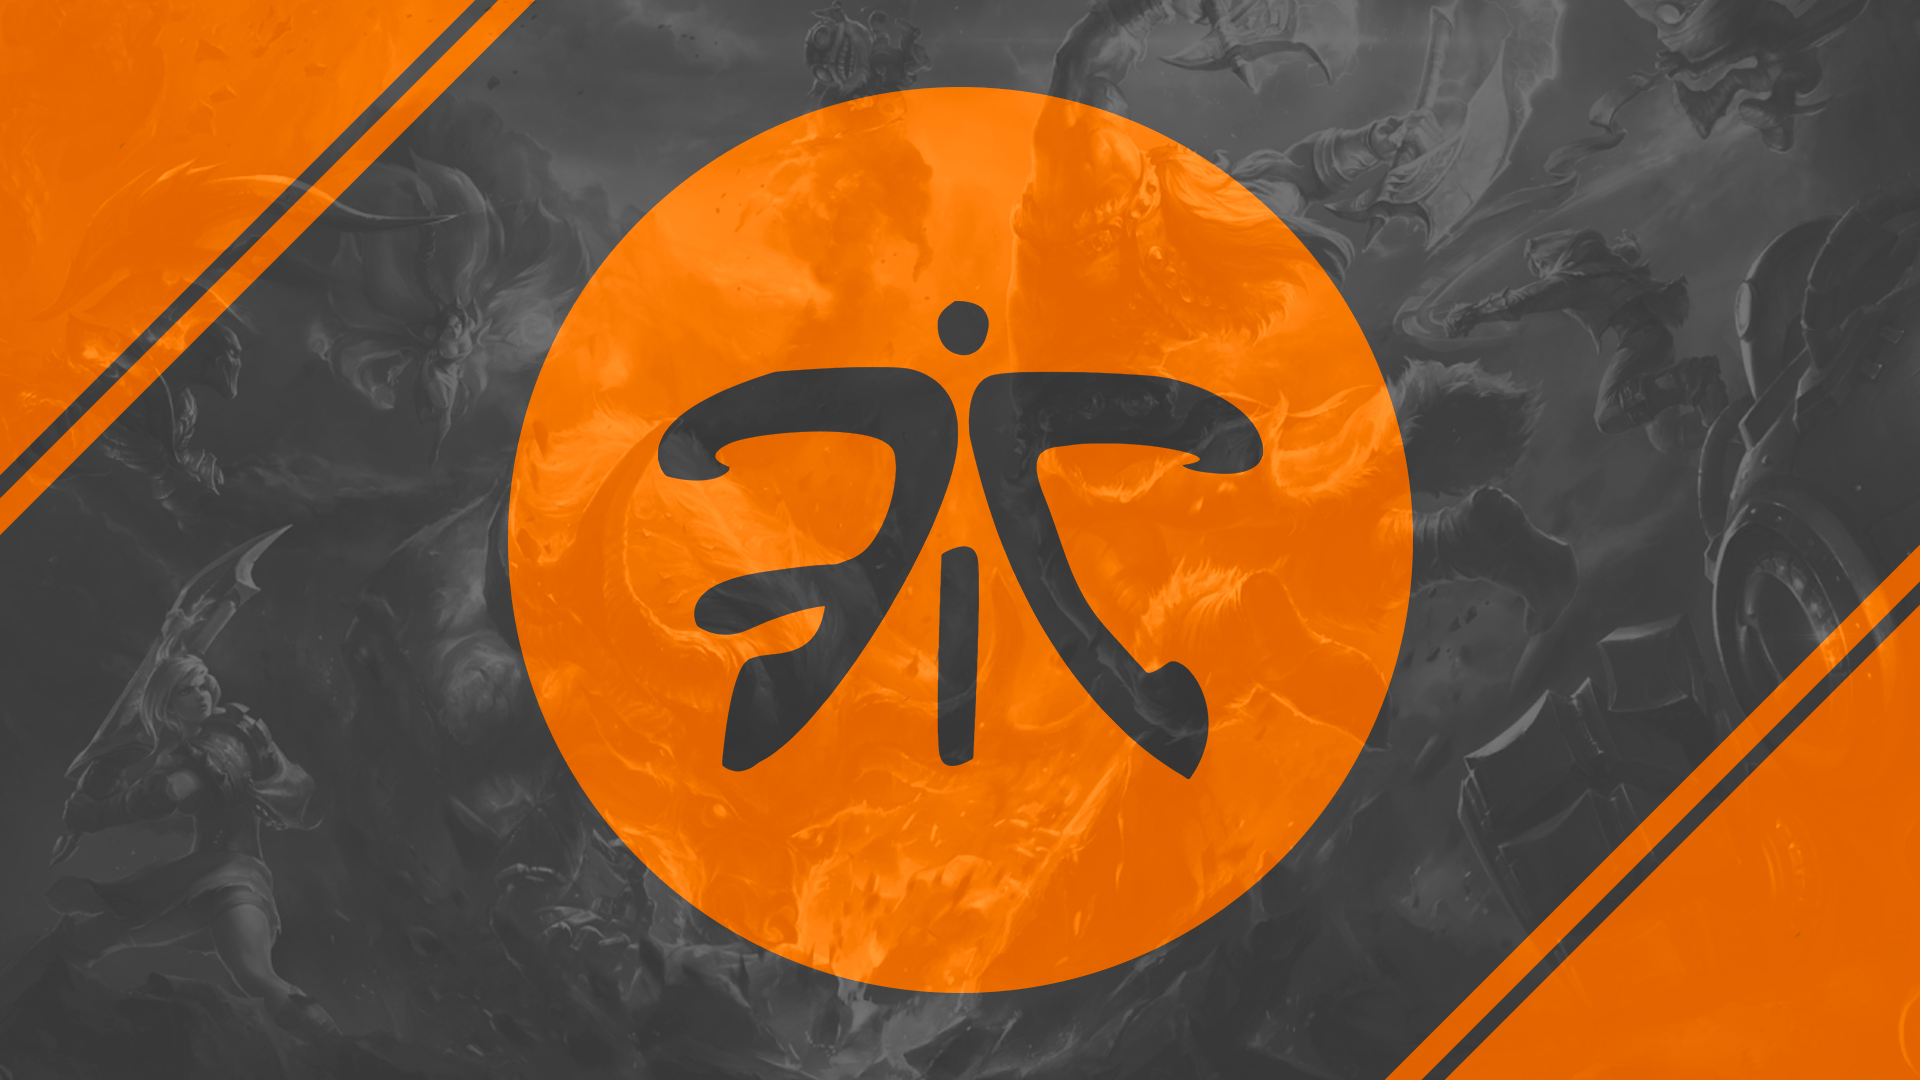 10 new Fnatic wallpapers created the last year : fnatic